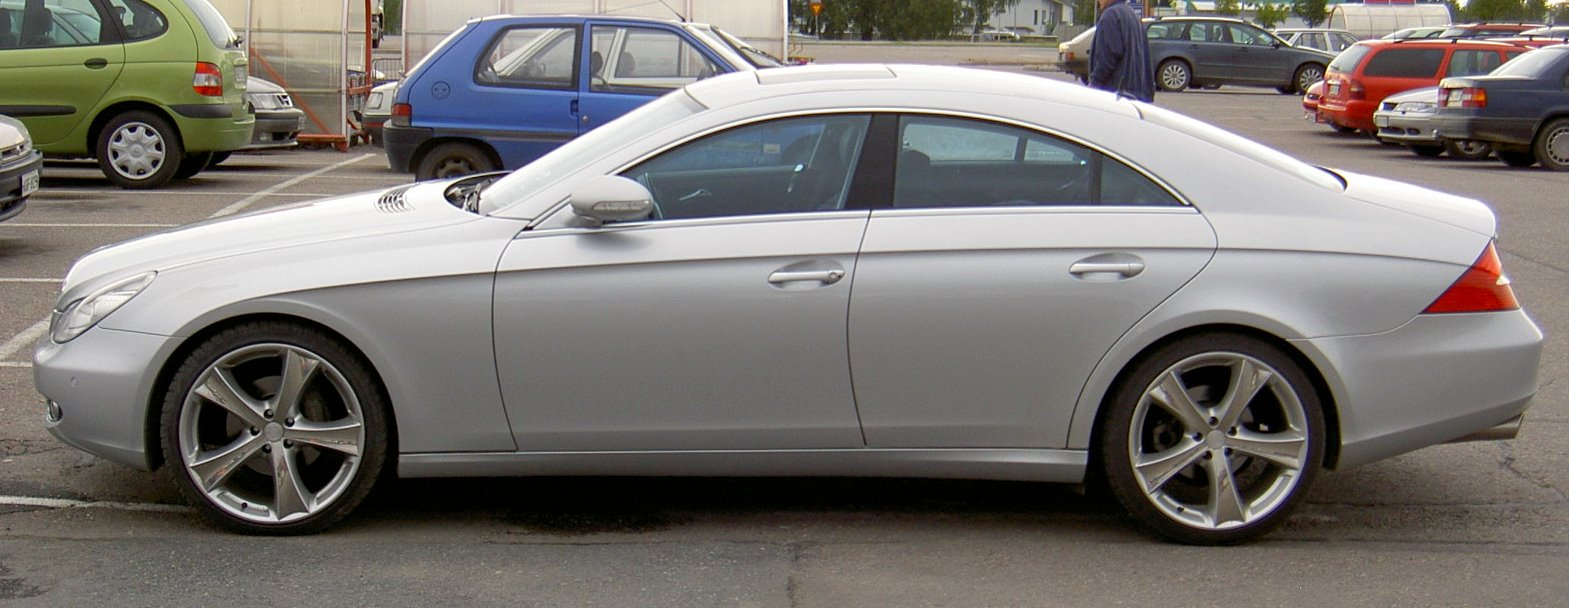 Mercedes-Benz CLS 320 photo 02